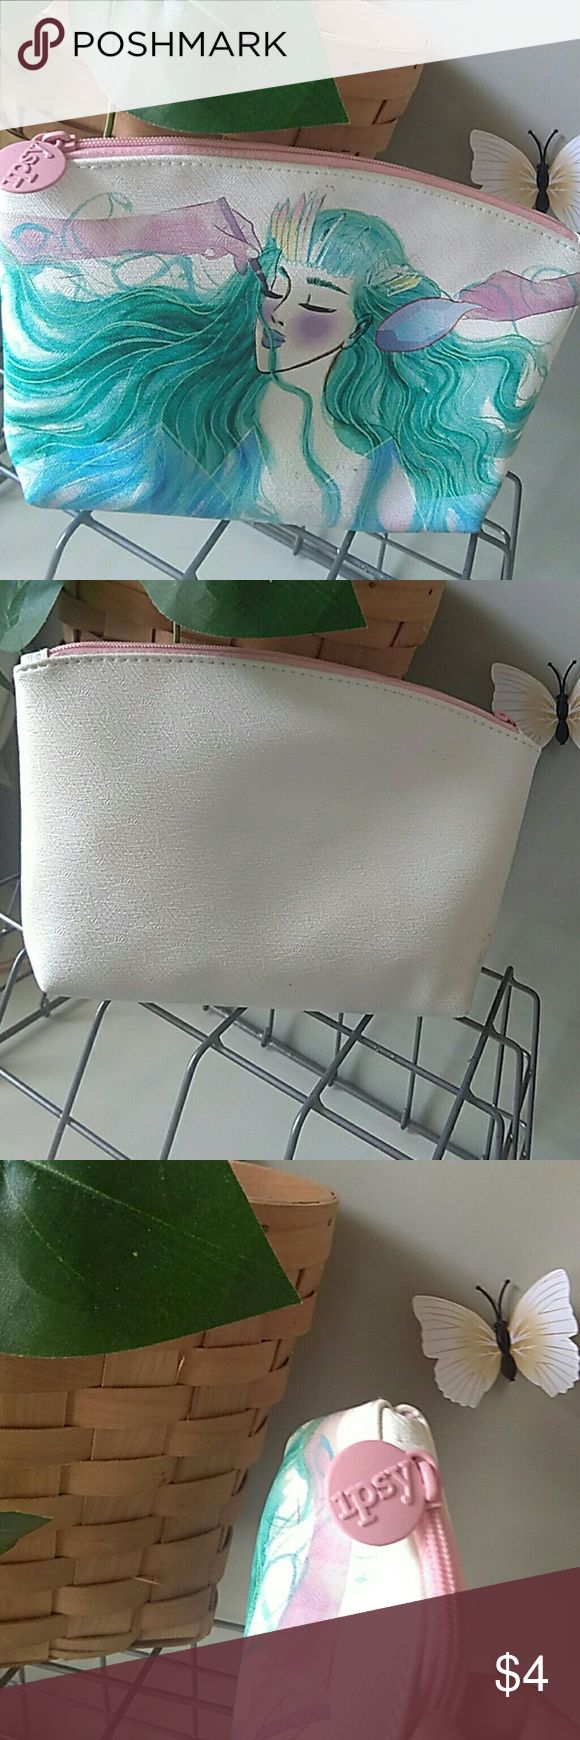 Make-up bag Small make-up bag.. white, woman design on front Ipsy Bags Cosmetic Bags & Cases